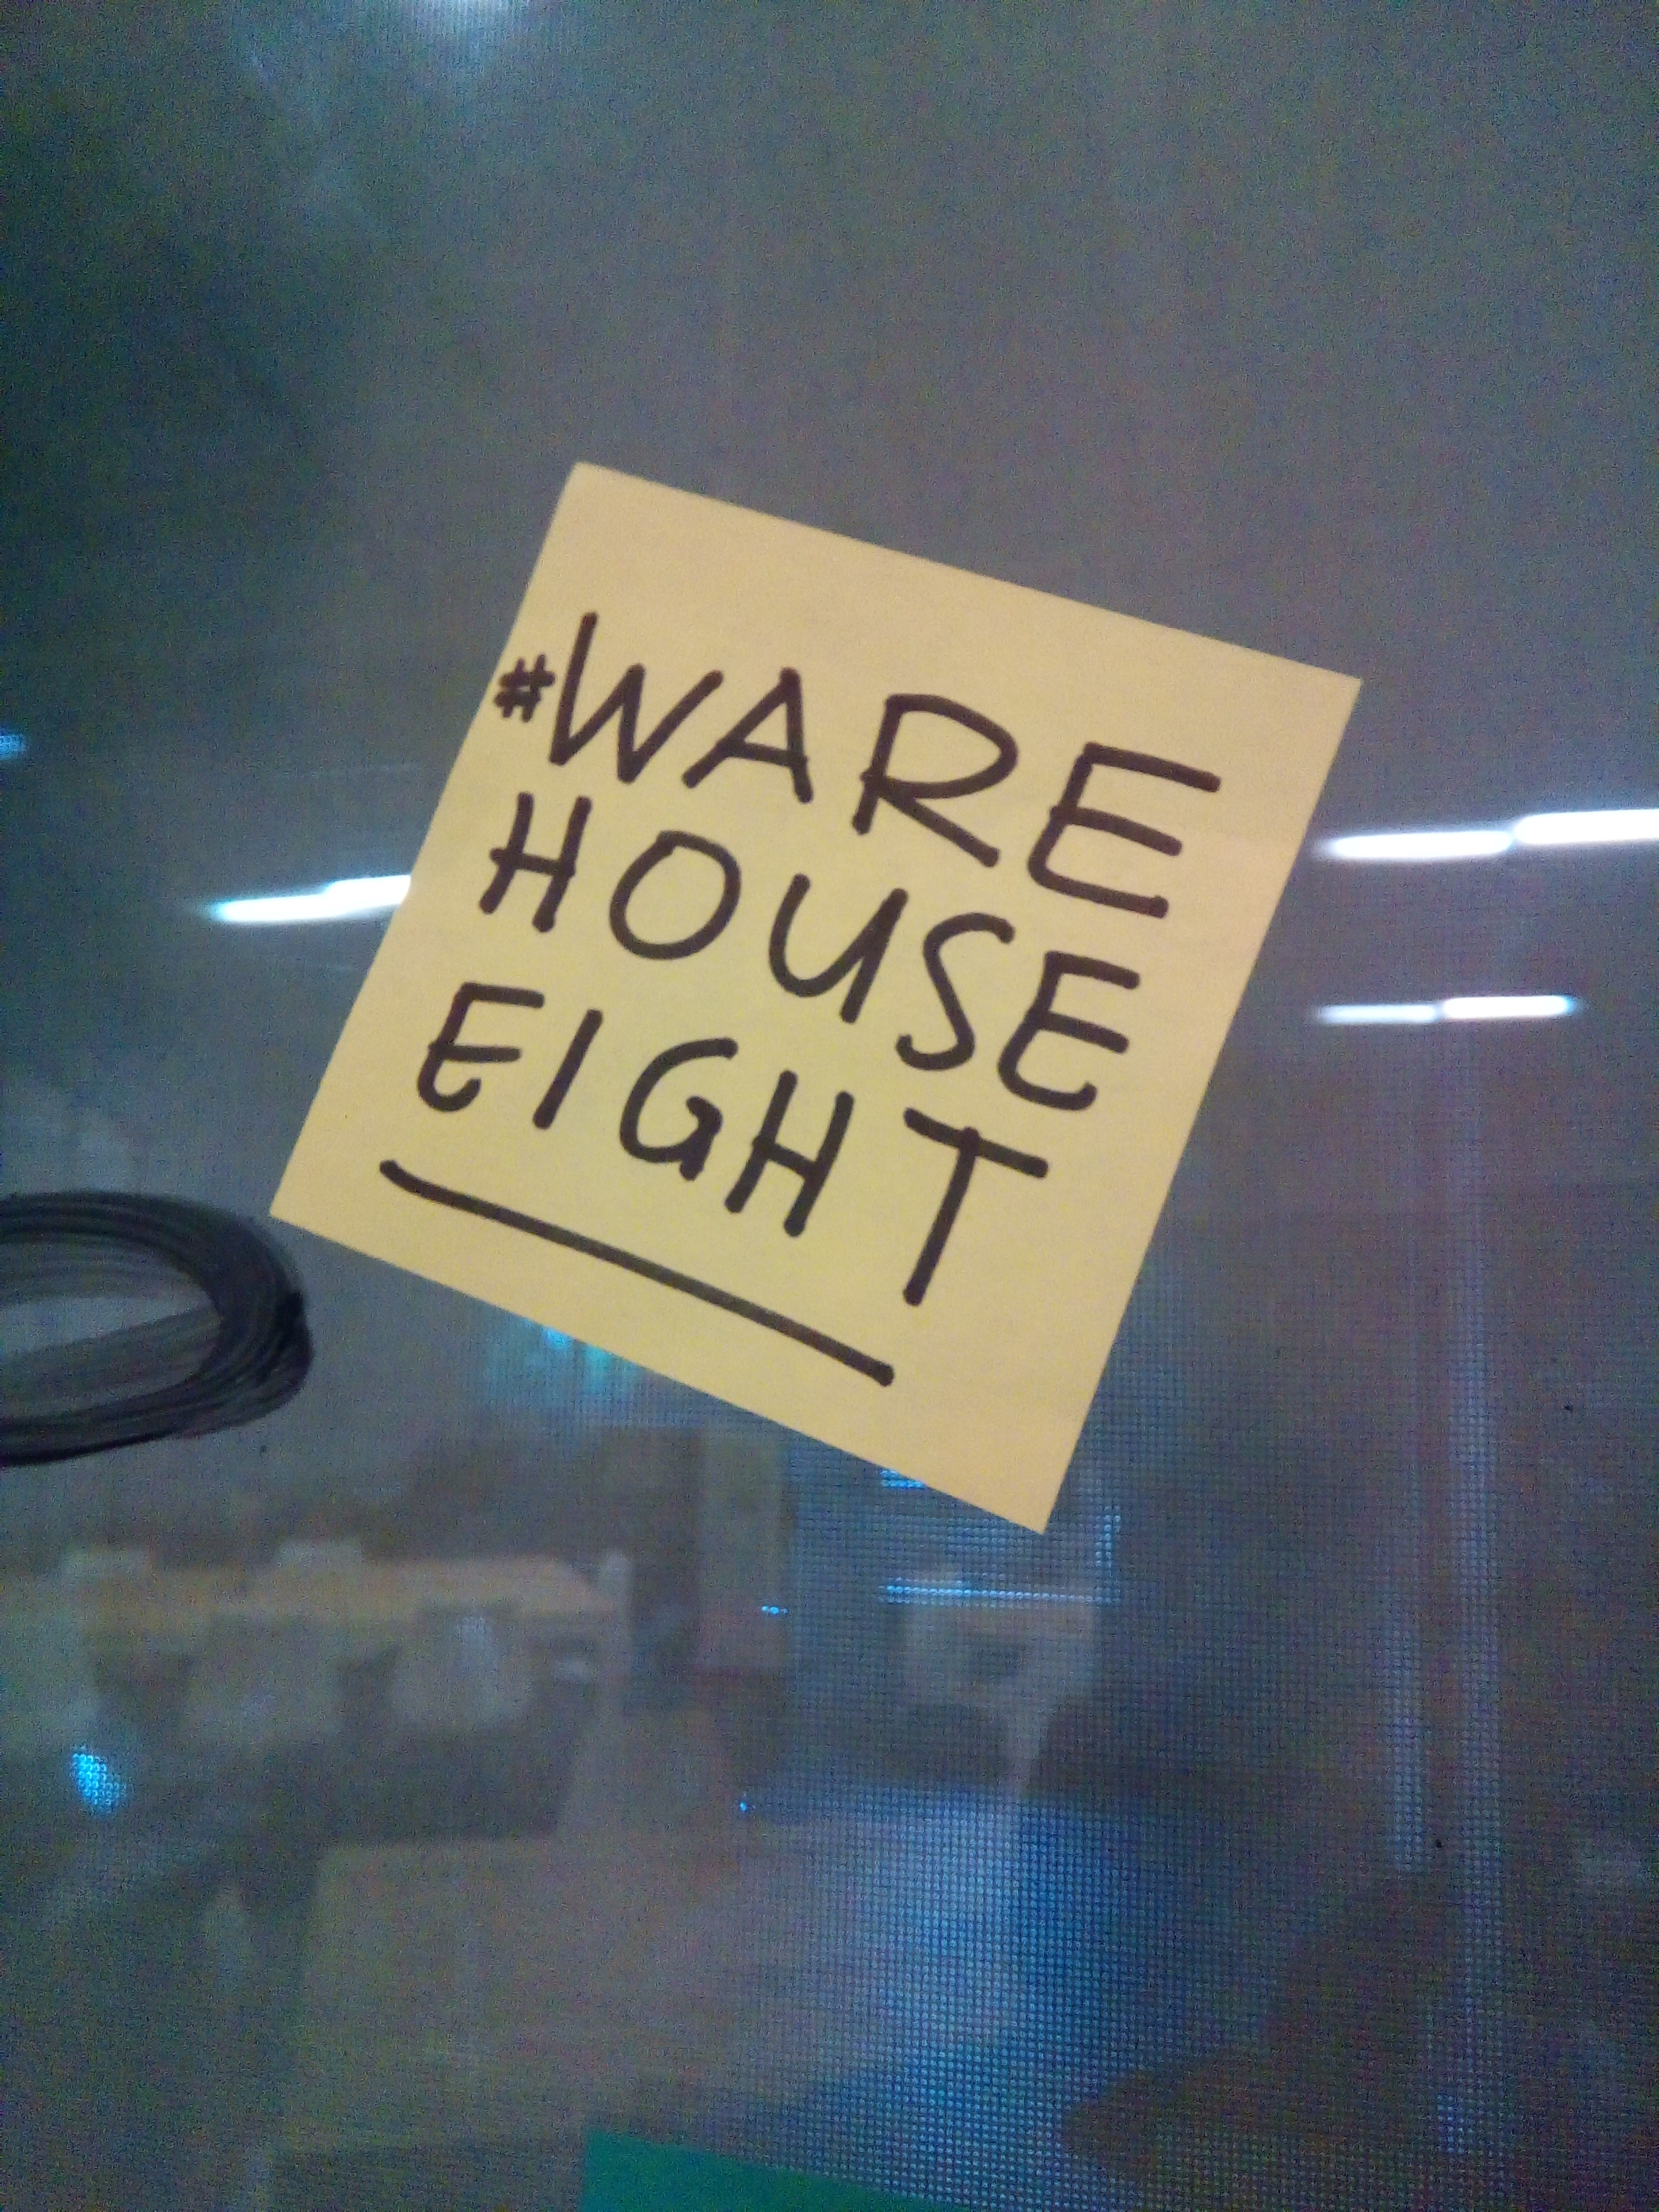 Warehouse Eight